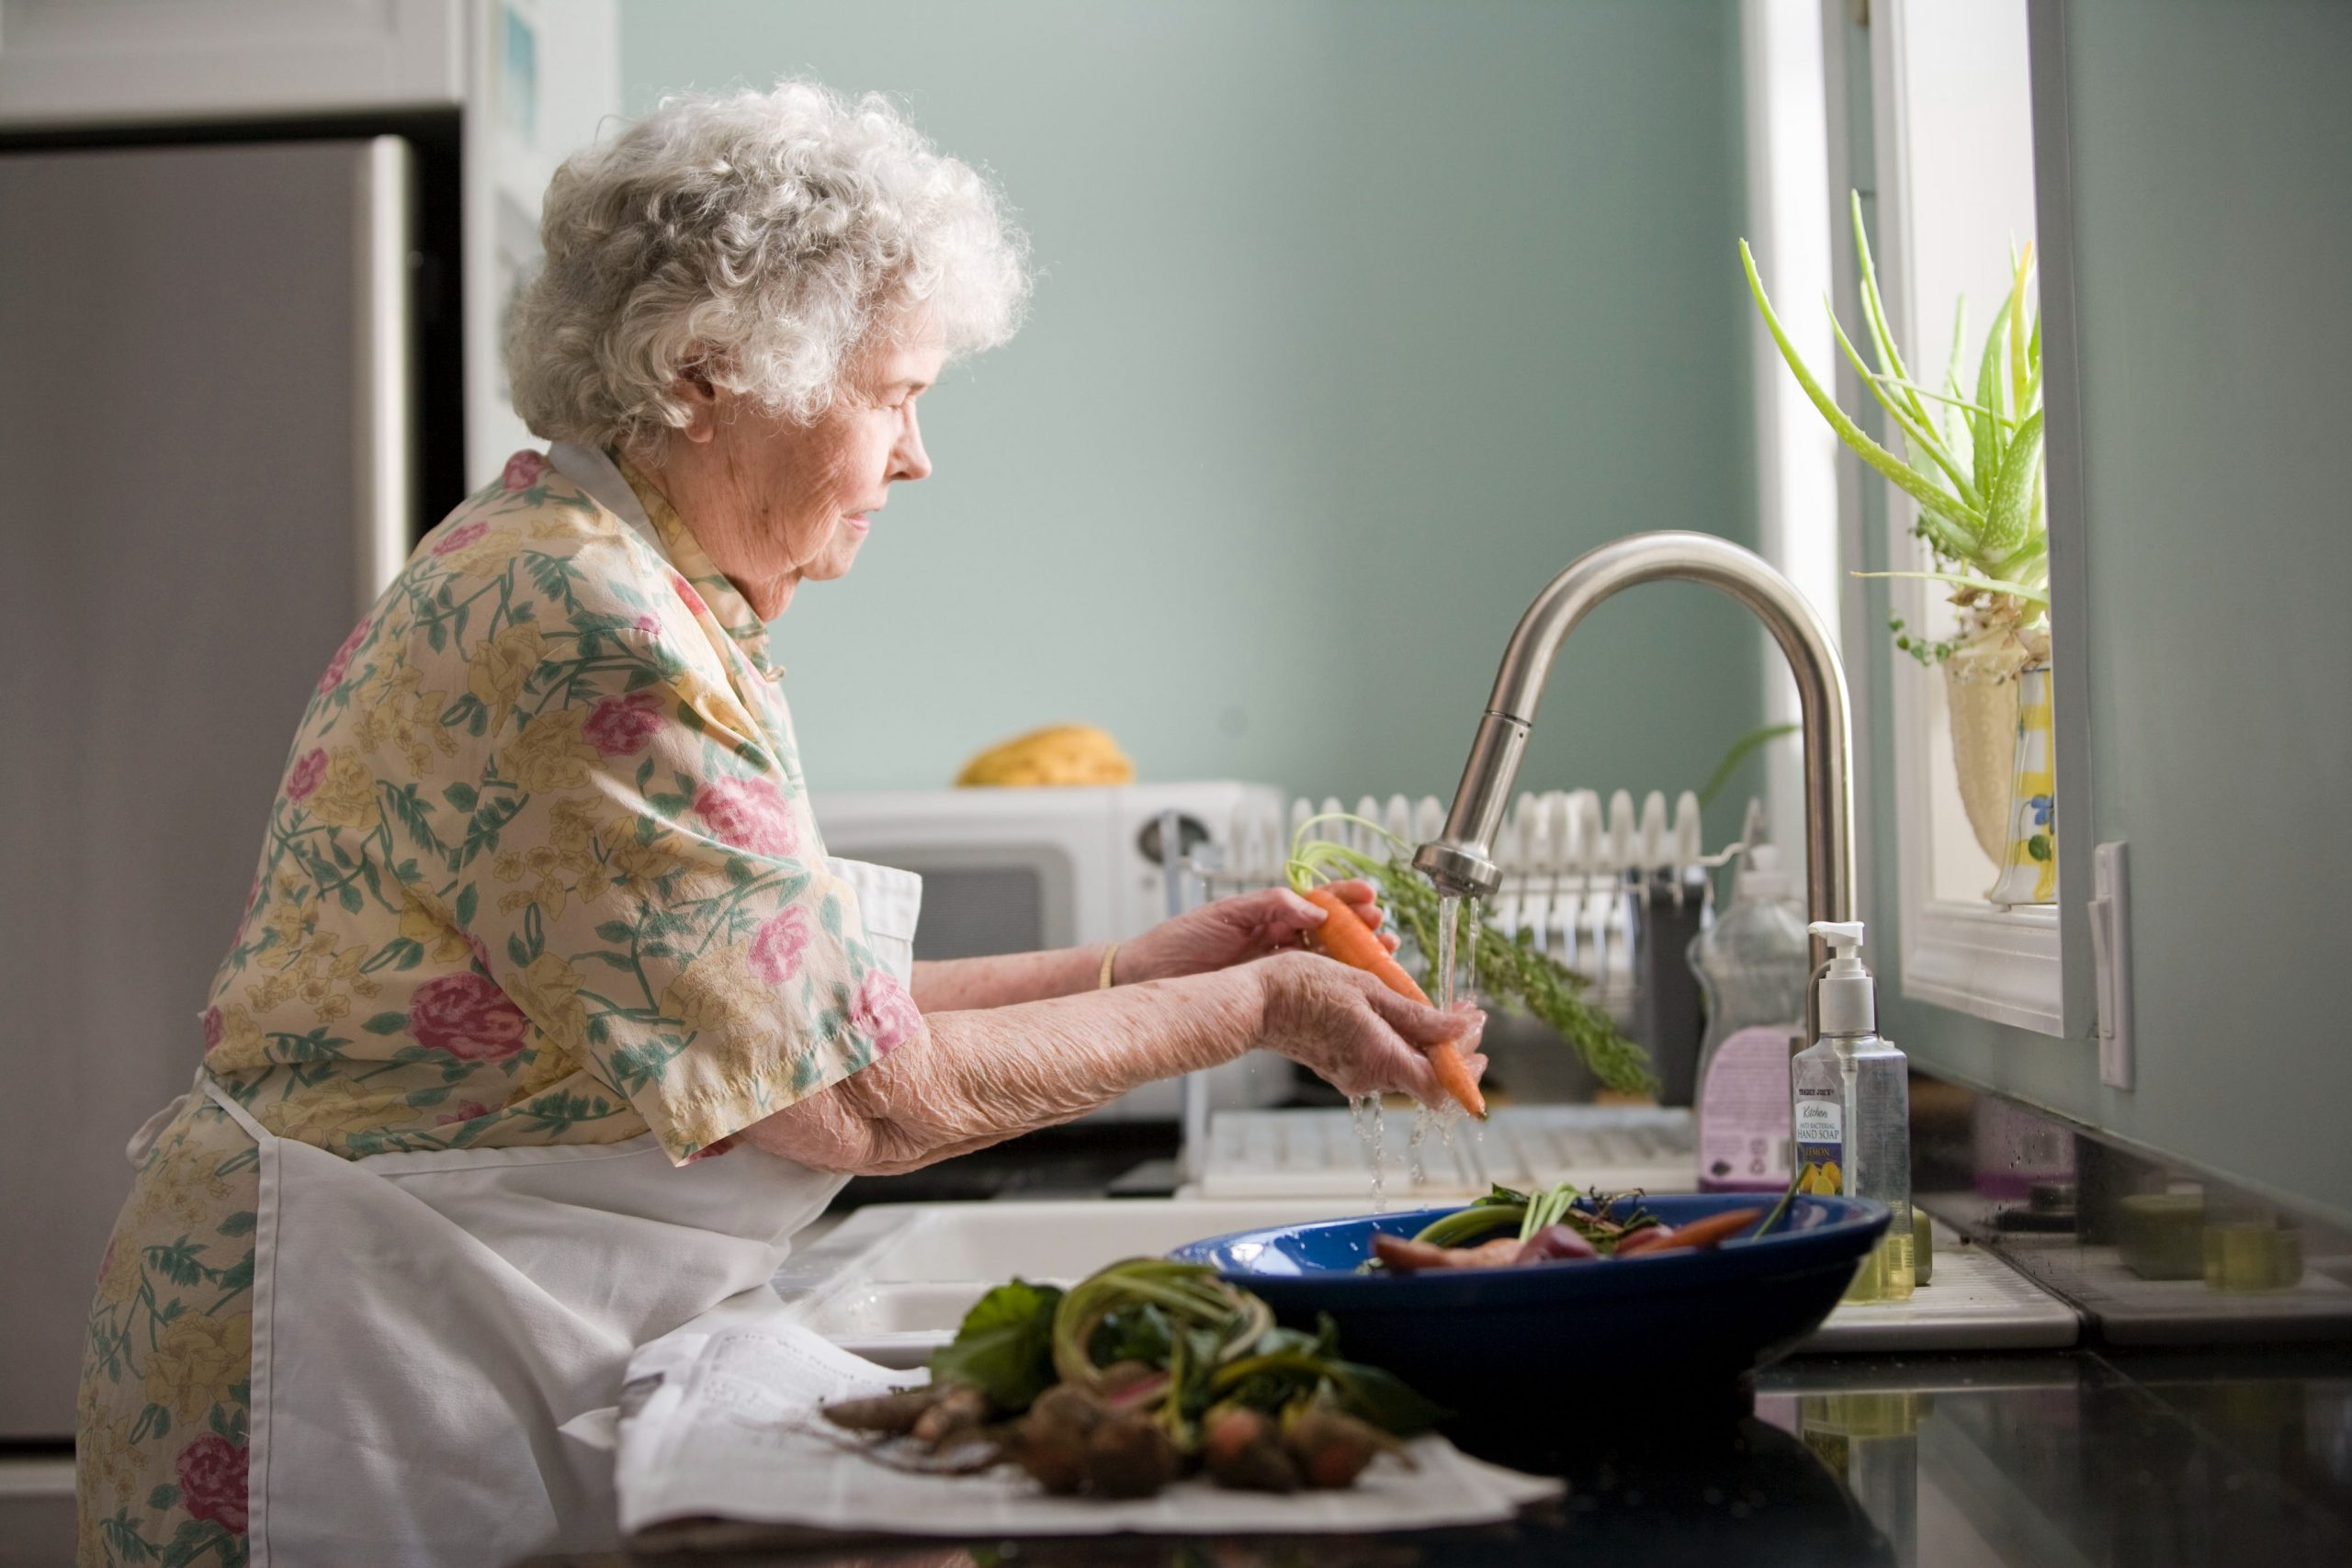 Ontario Providing Additional Support for Seniors